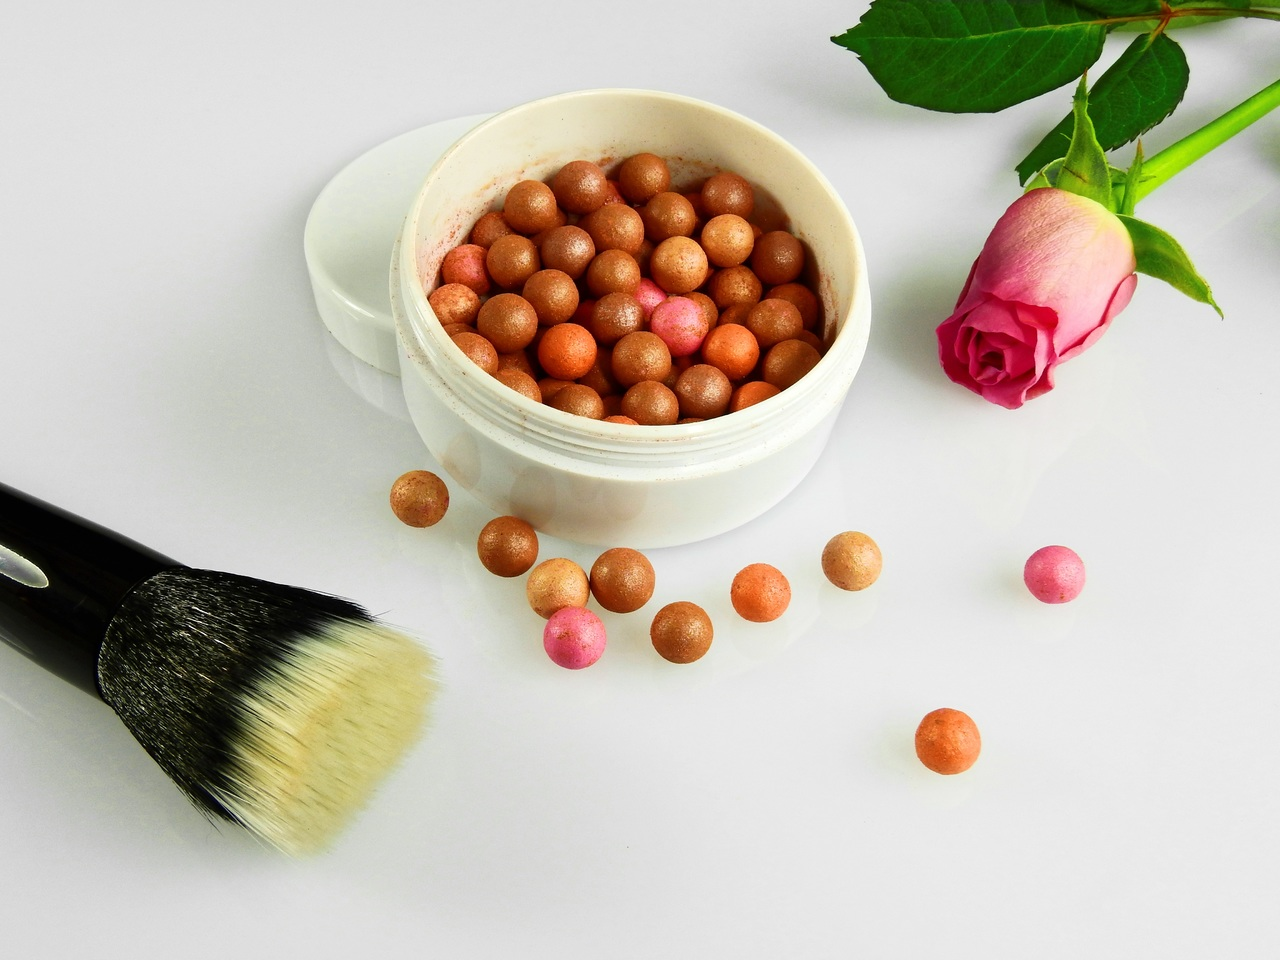 There are diversified makeup kits available in the market. Among them, bronzing pearls are much famous